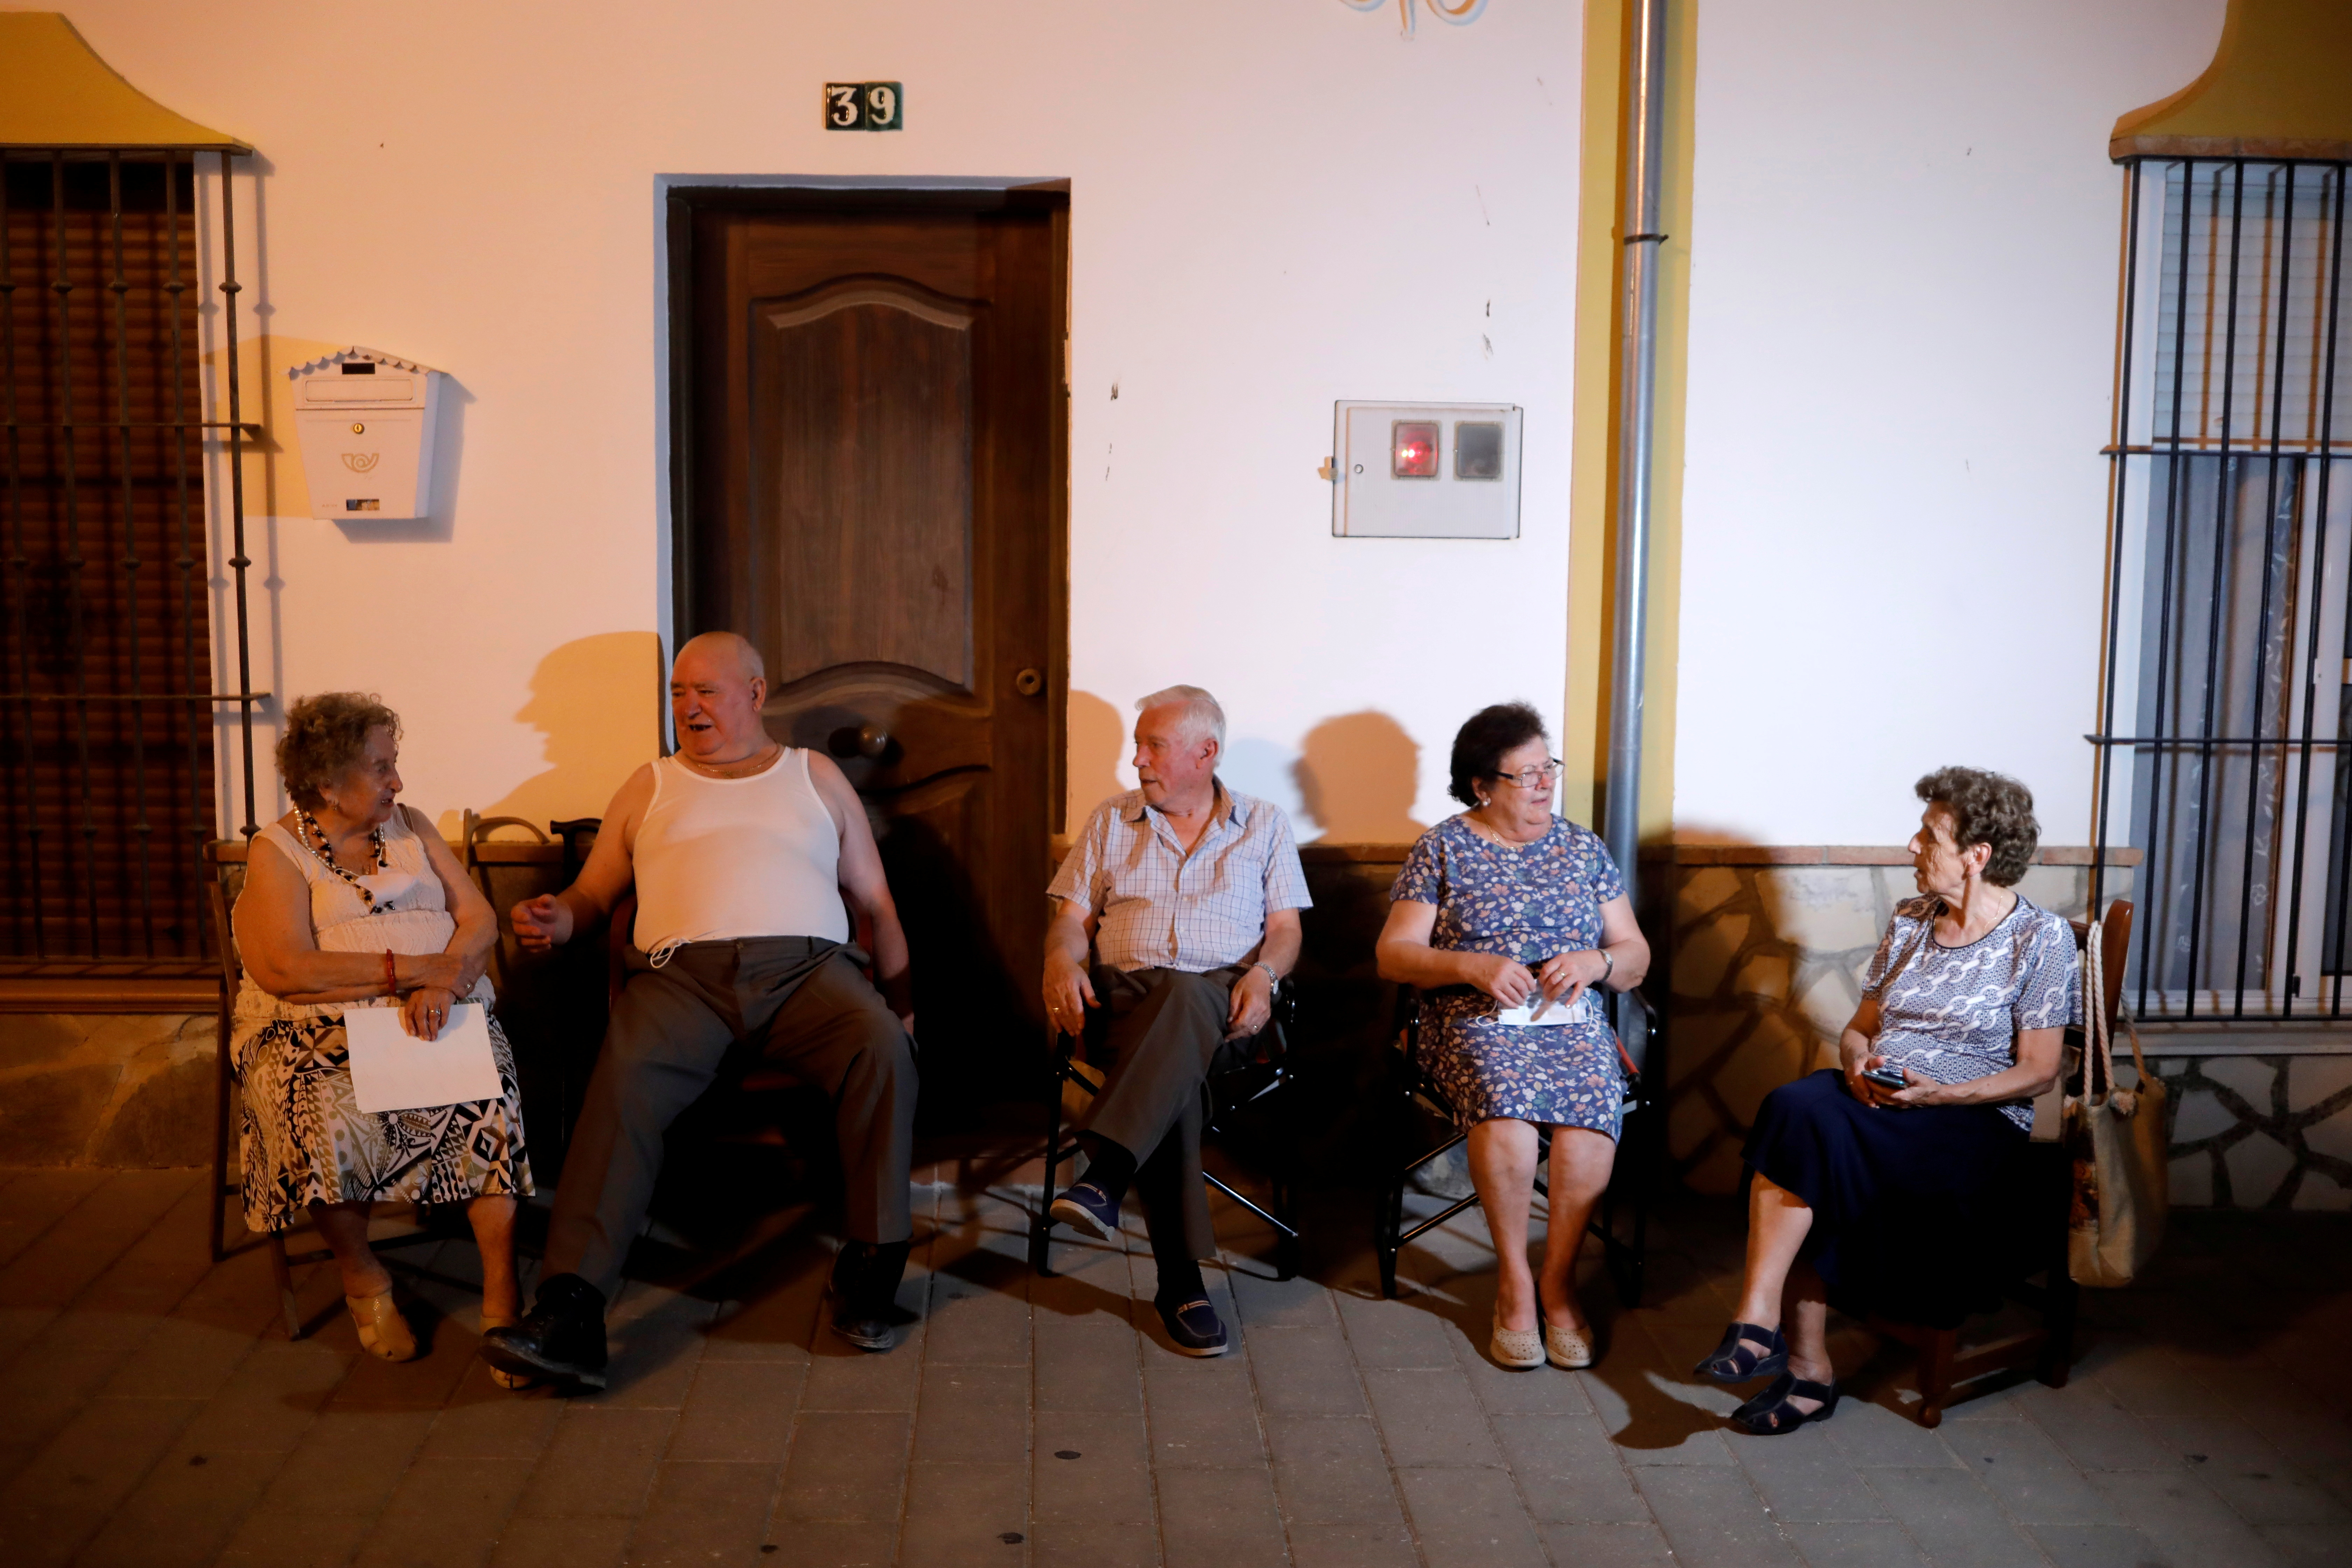 Neighbours chat outside their houses to avoid the heat at night, as a heatwave hits Spain, in Algar, August 12, 2021.  REUTERS/Jon Nazca